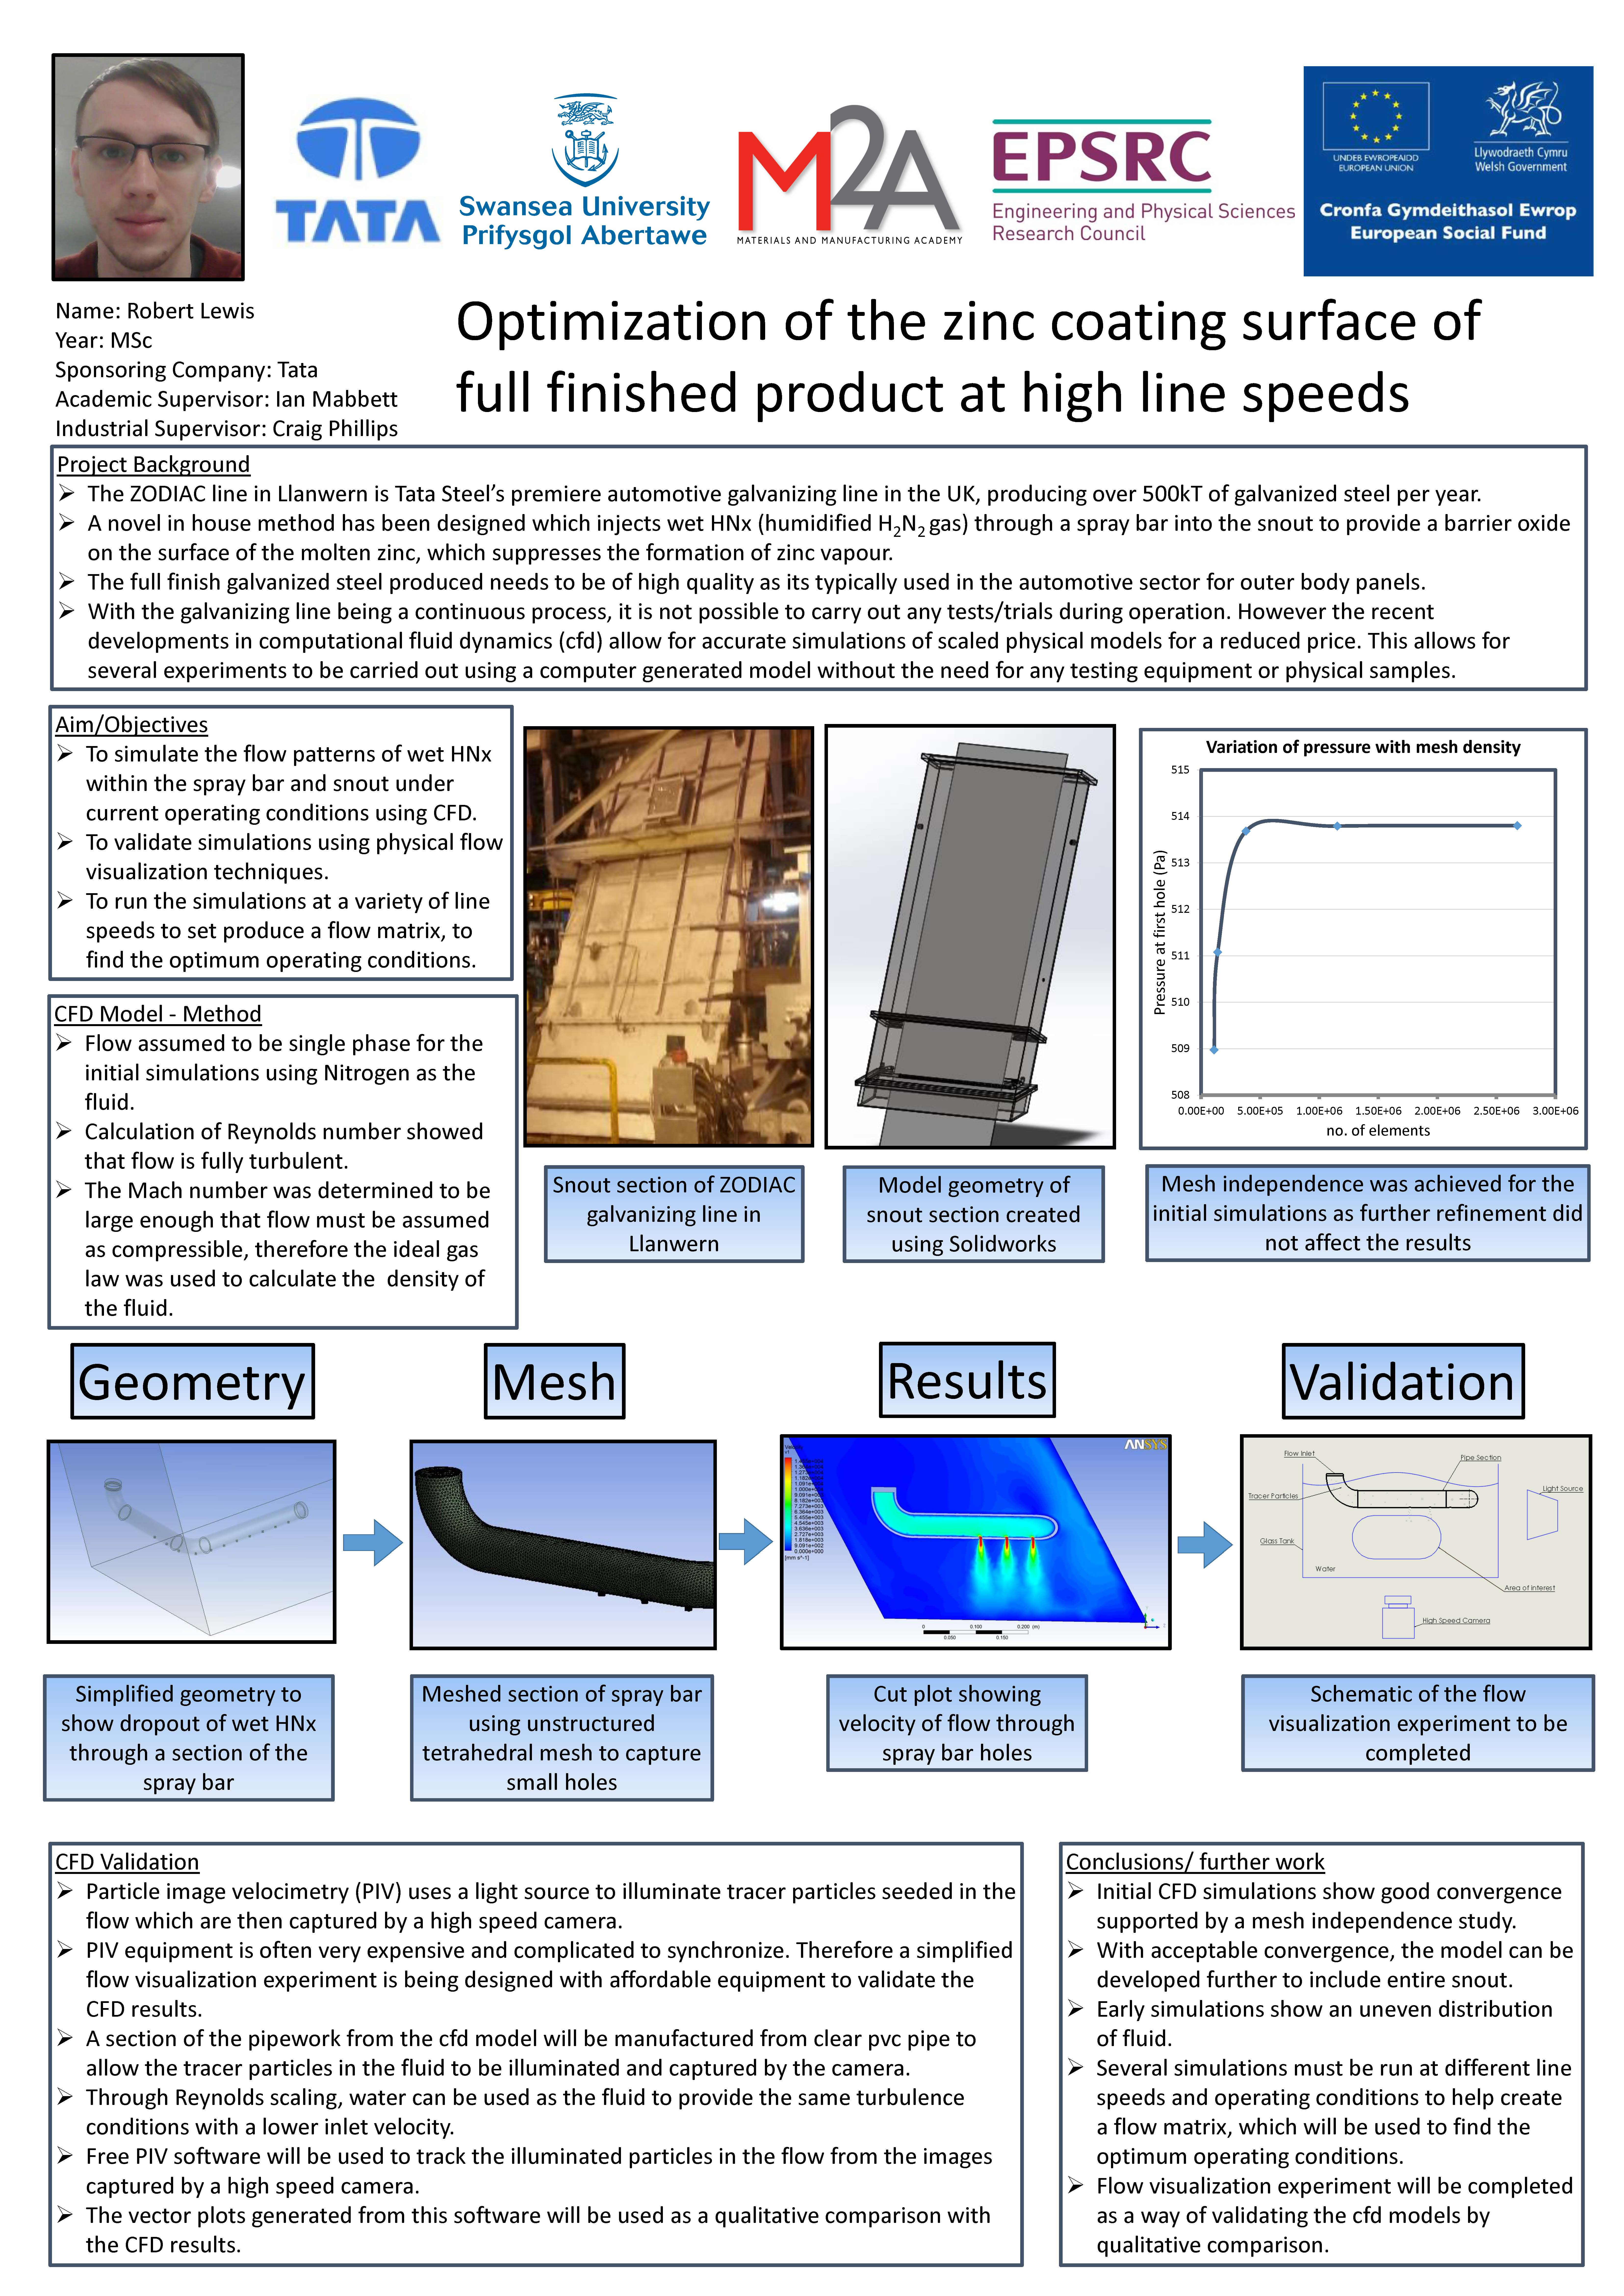 Optimization of the zinc coating surface of full finished product at high line speeds